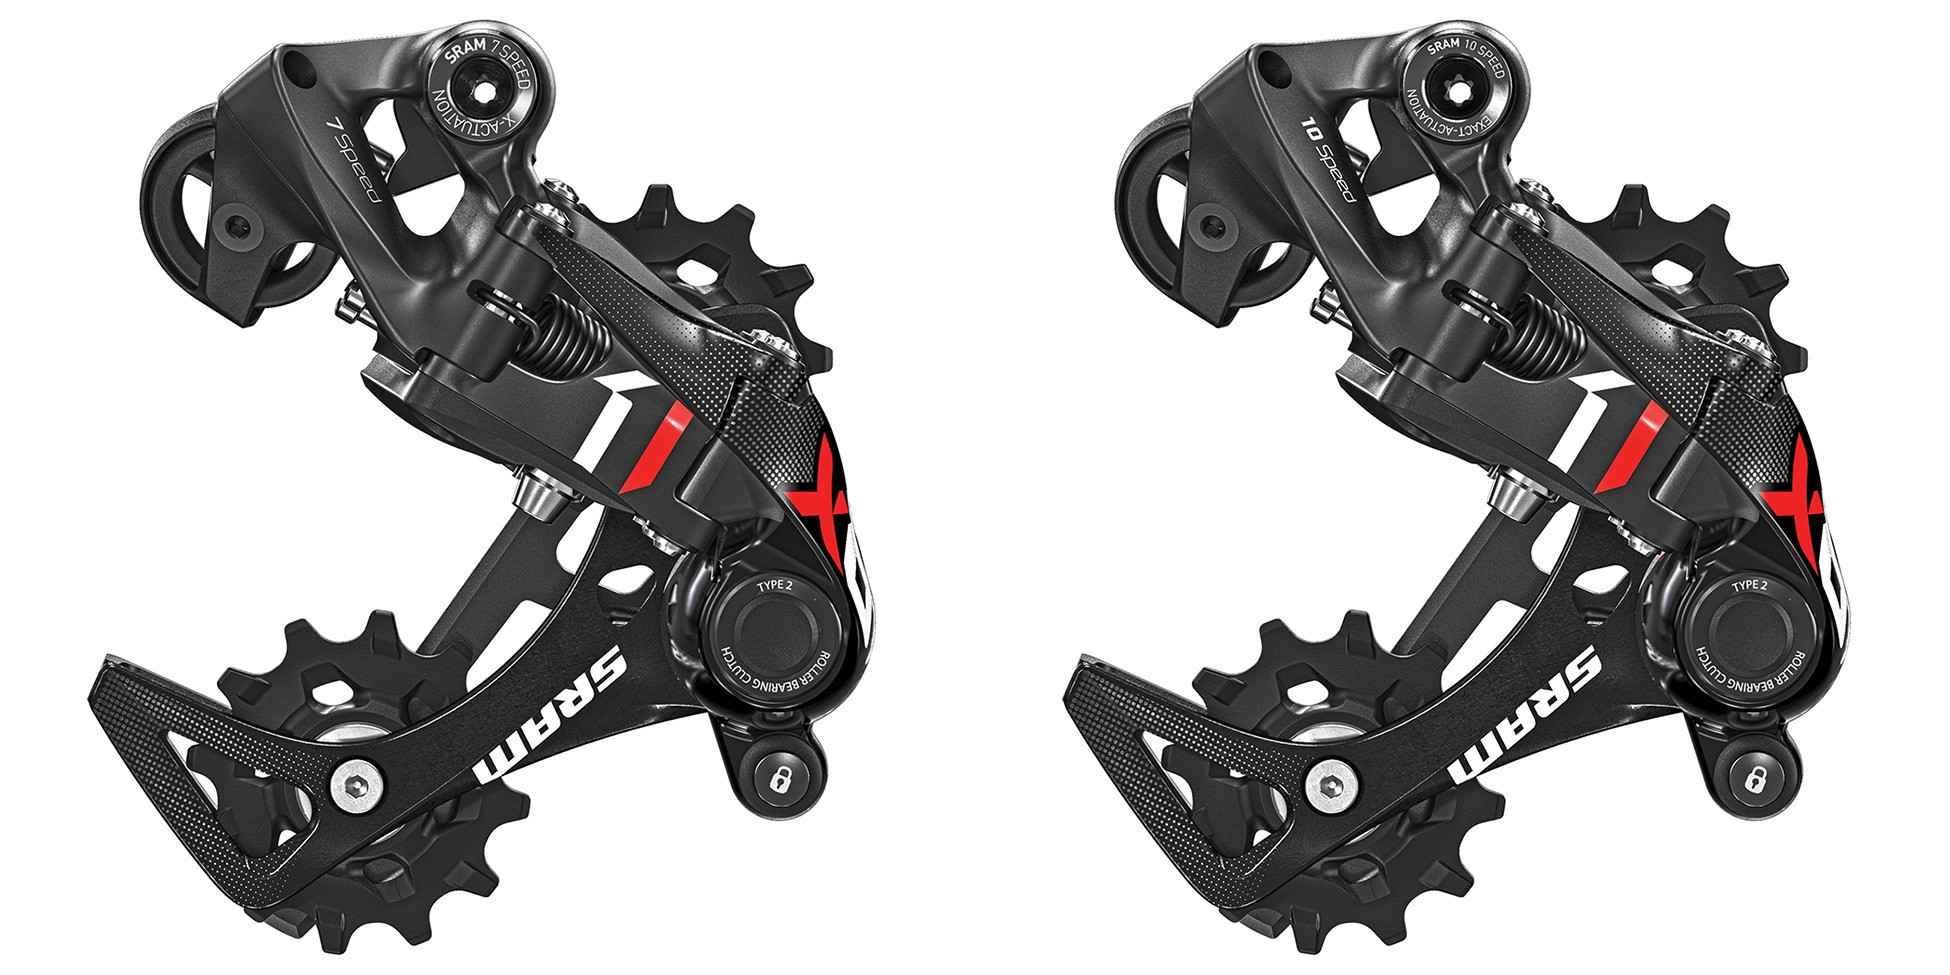 SRAM X01 DH 7-speed (l) and 10-speed (r) derailleurs